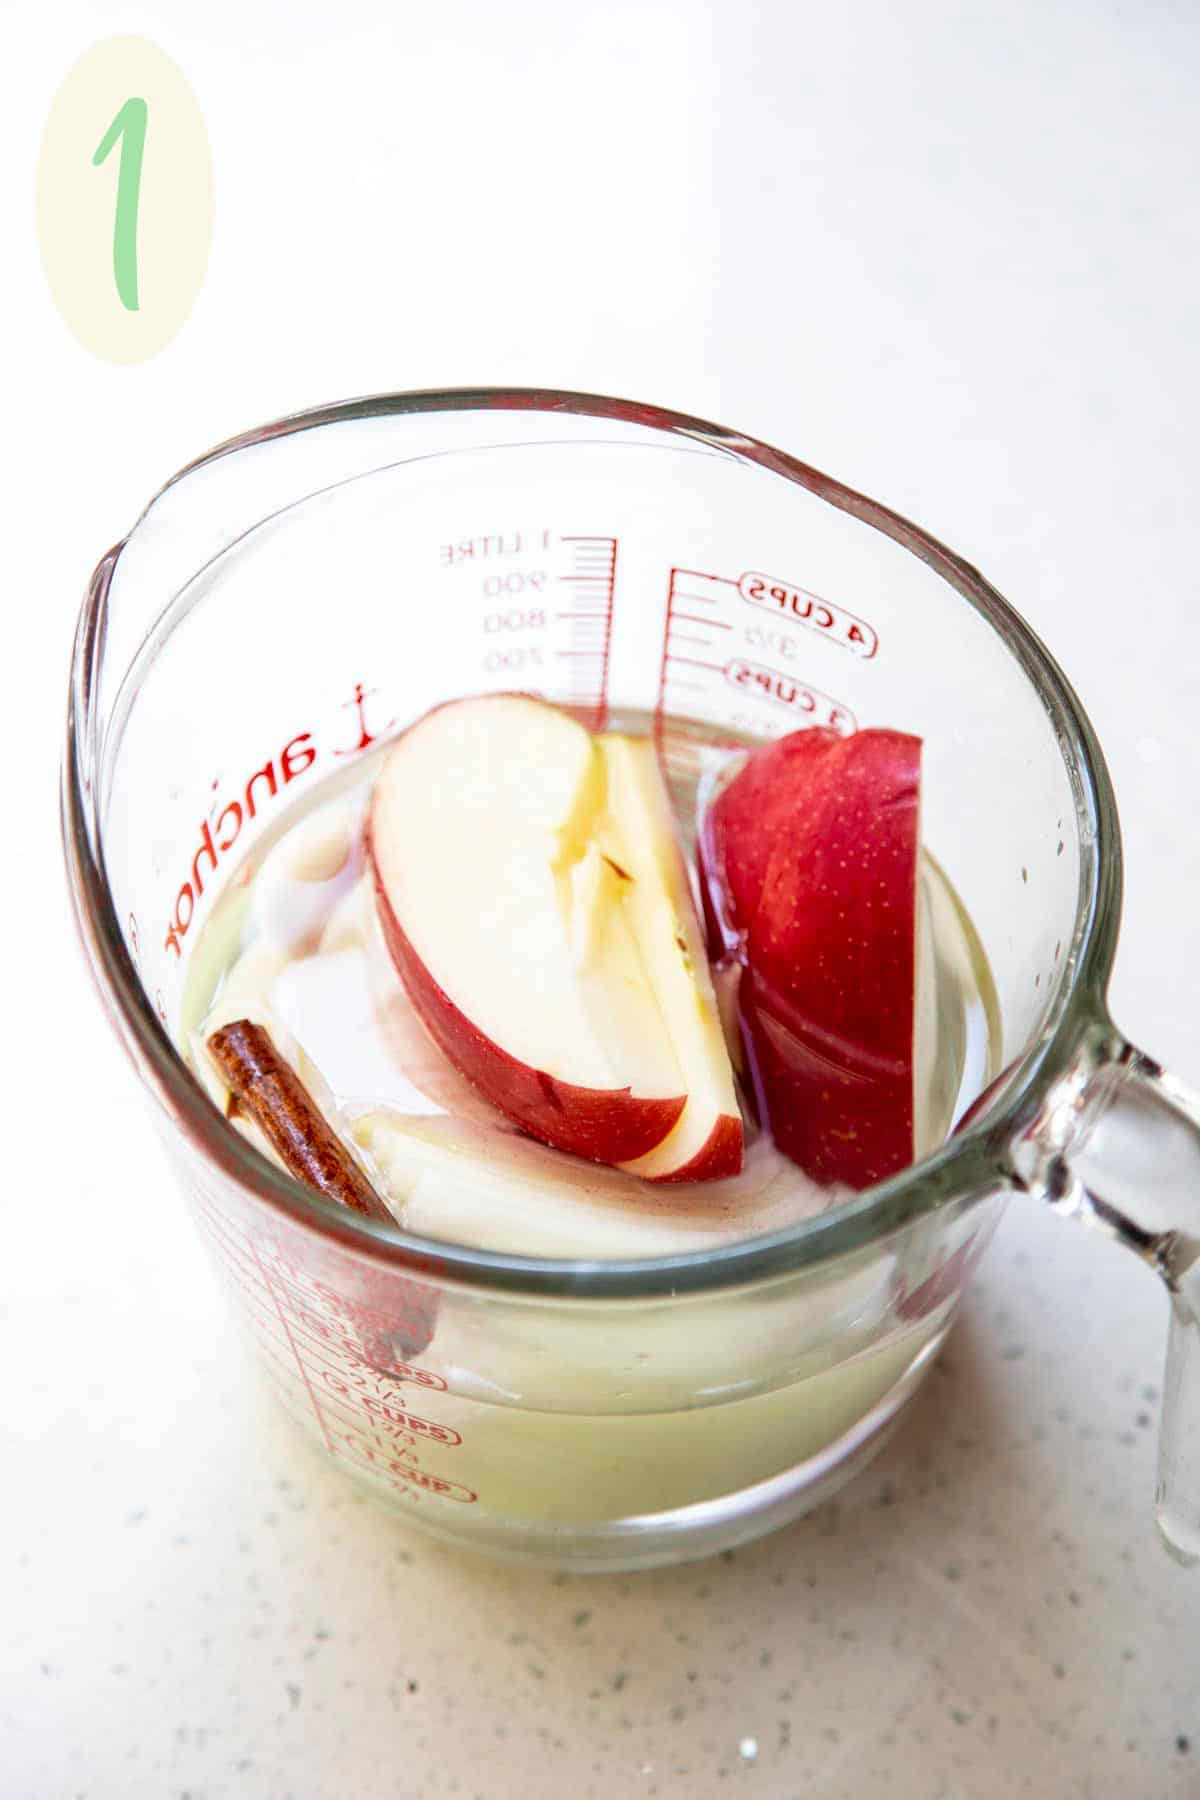 Apple, onion, cinnamon, garlic in water in a pyrex measuring cup